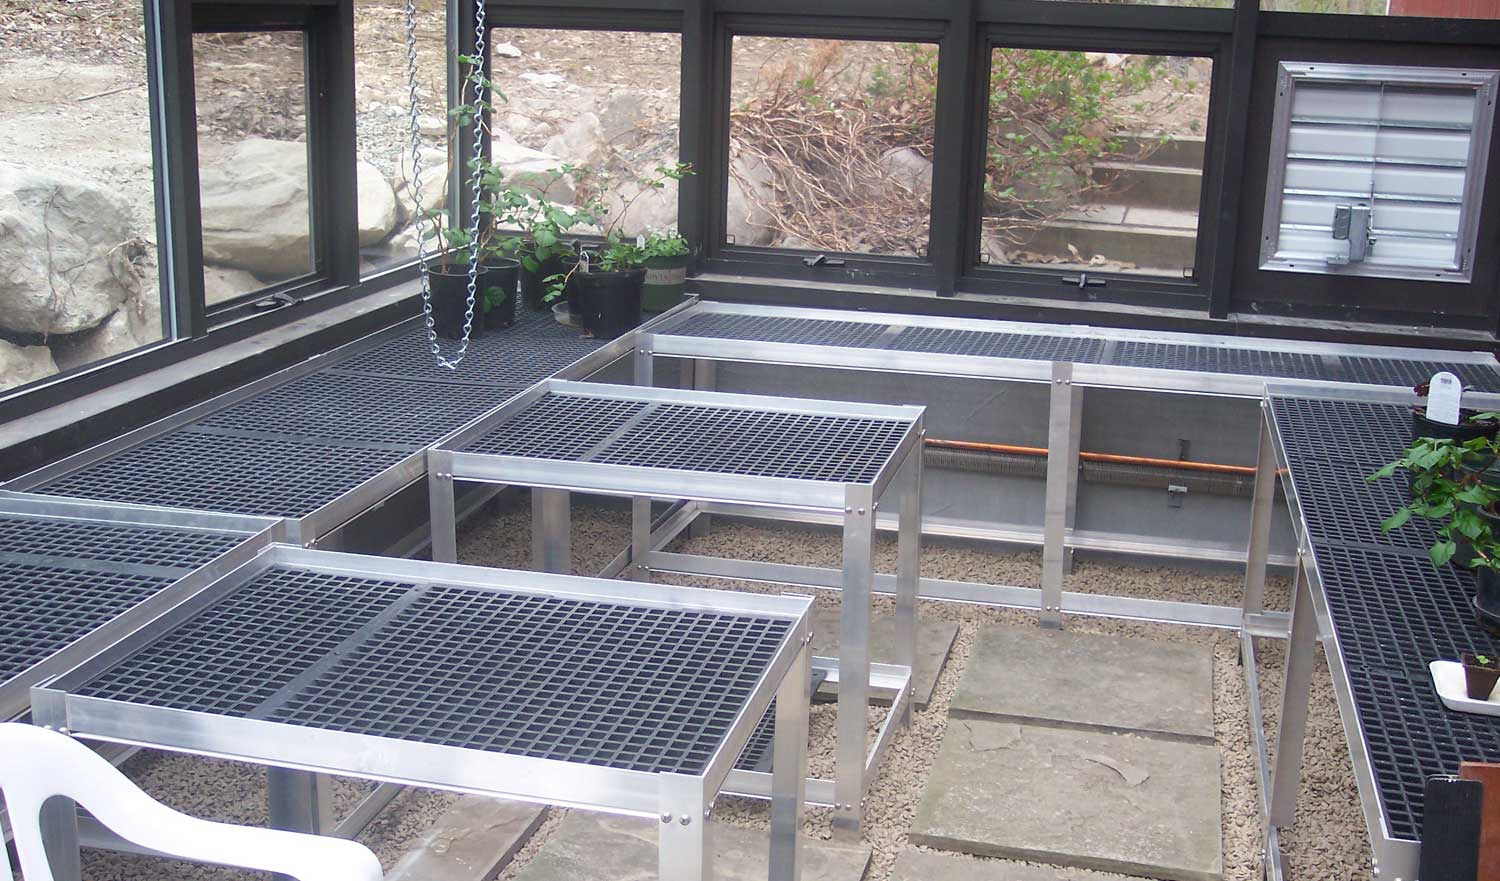 Advanced & Hobby Gardeners greenhouse, green house kit, orchid